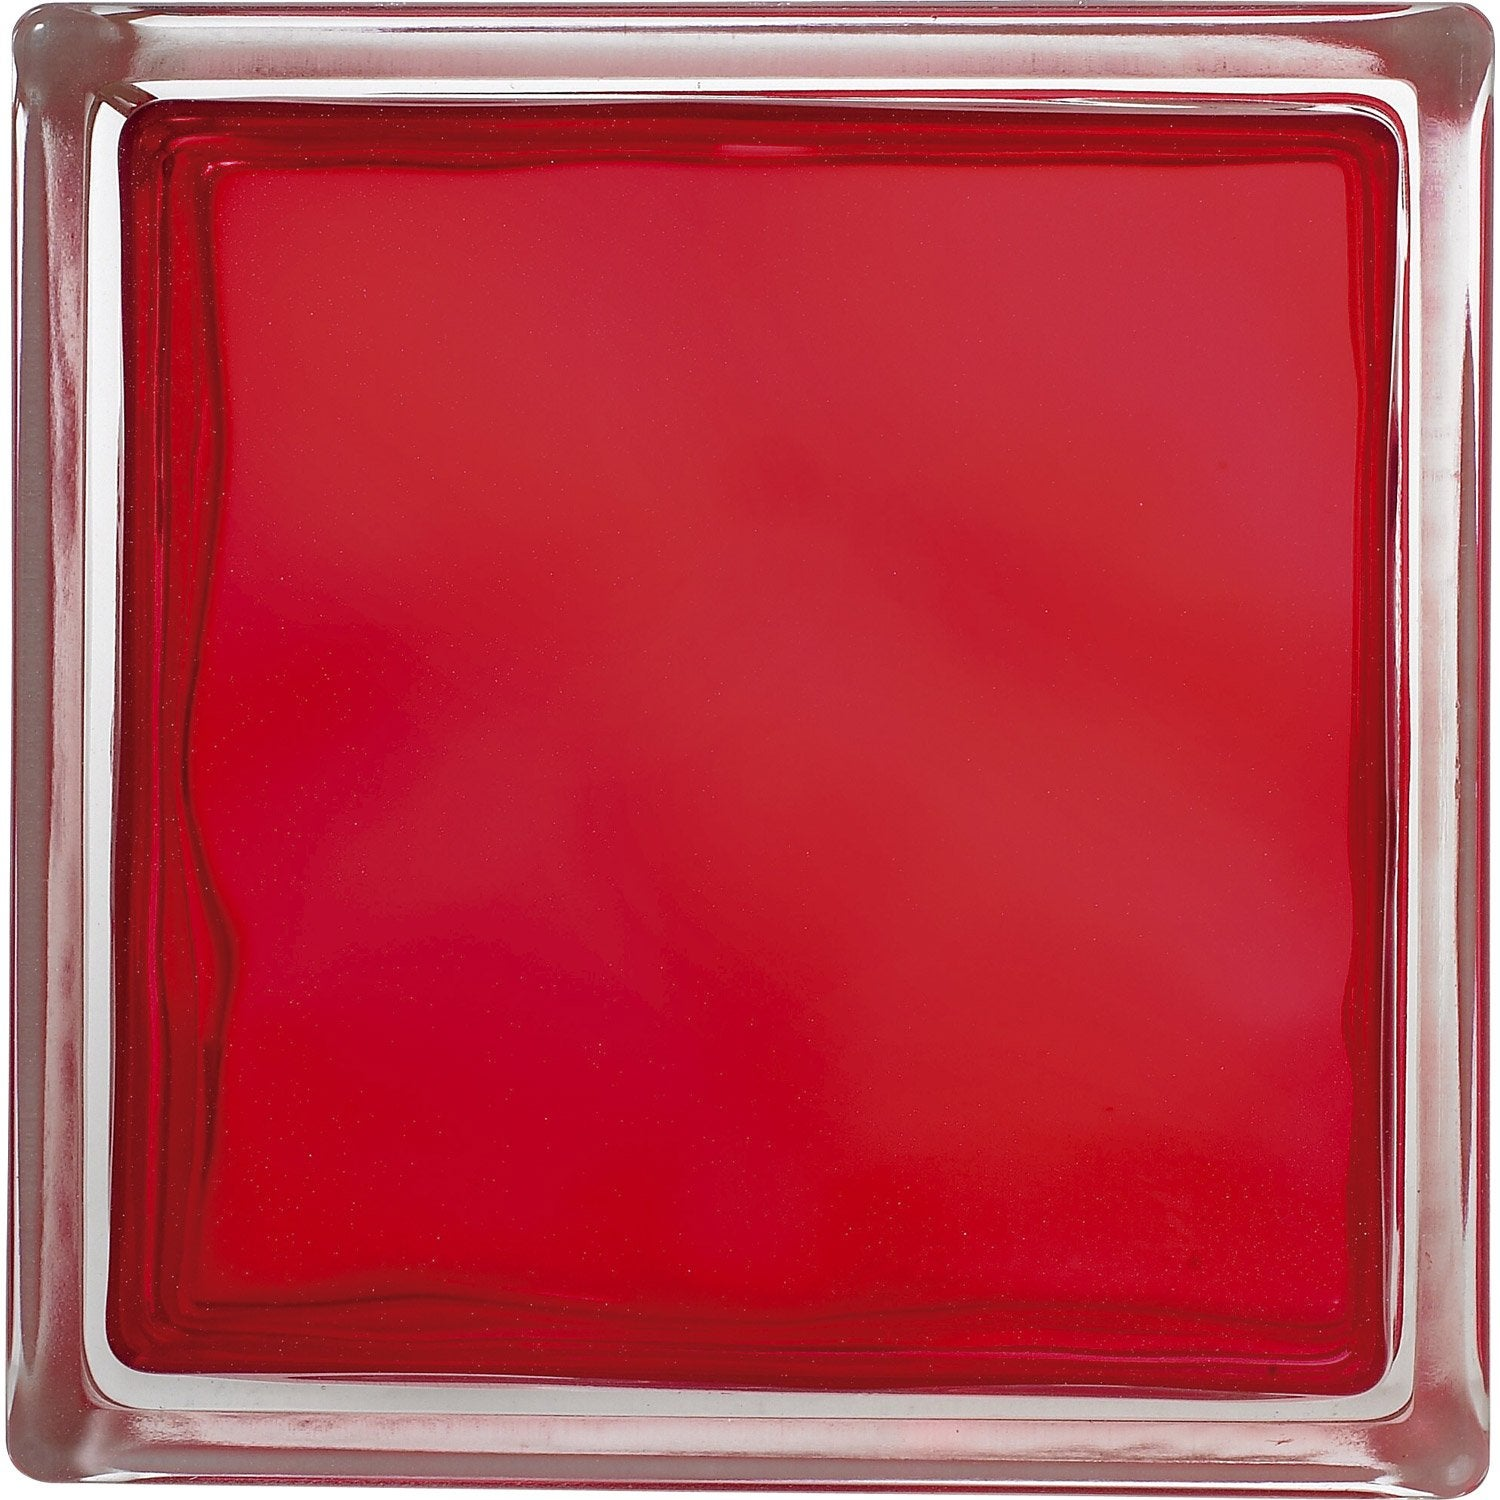 Brique de verre rouge ondul brillant leroy merlin for Pose carreau de verre exterieur